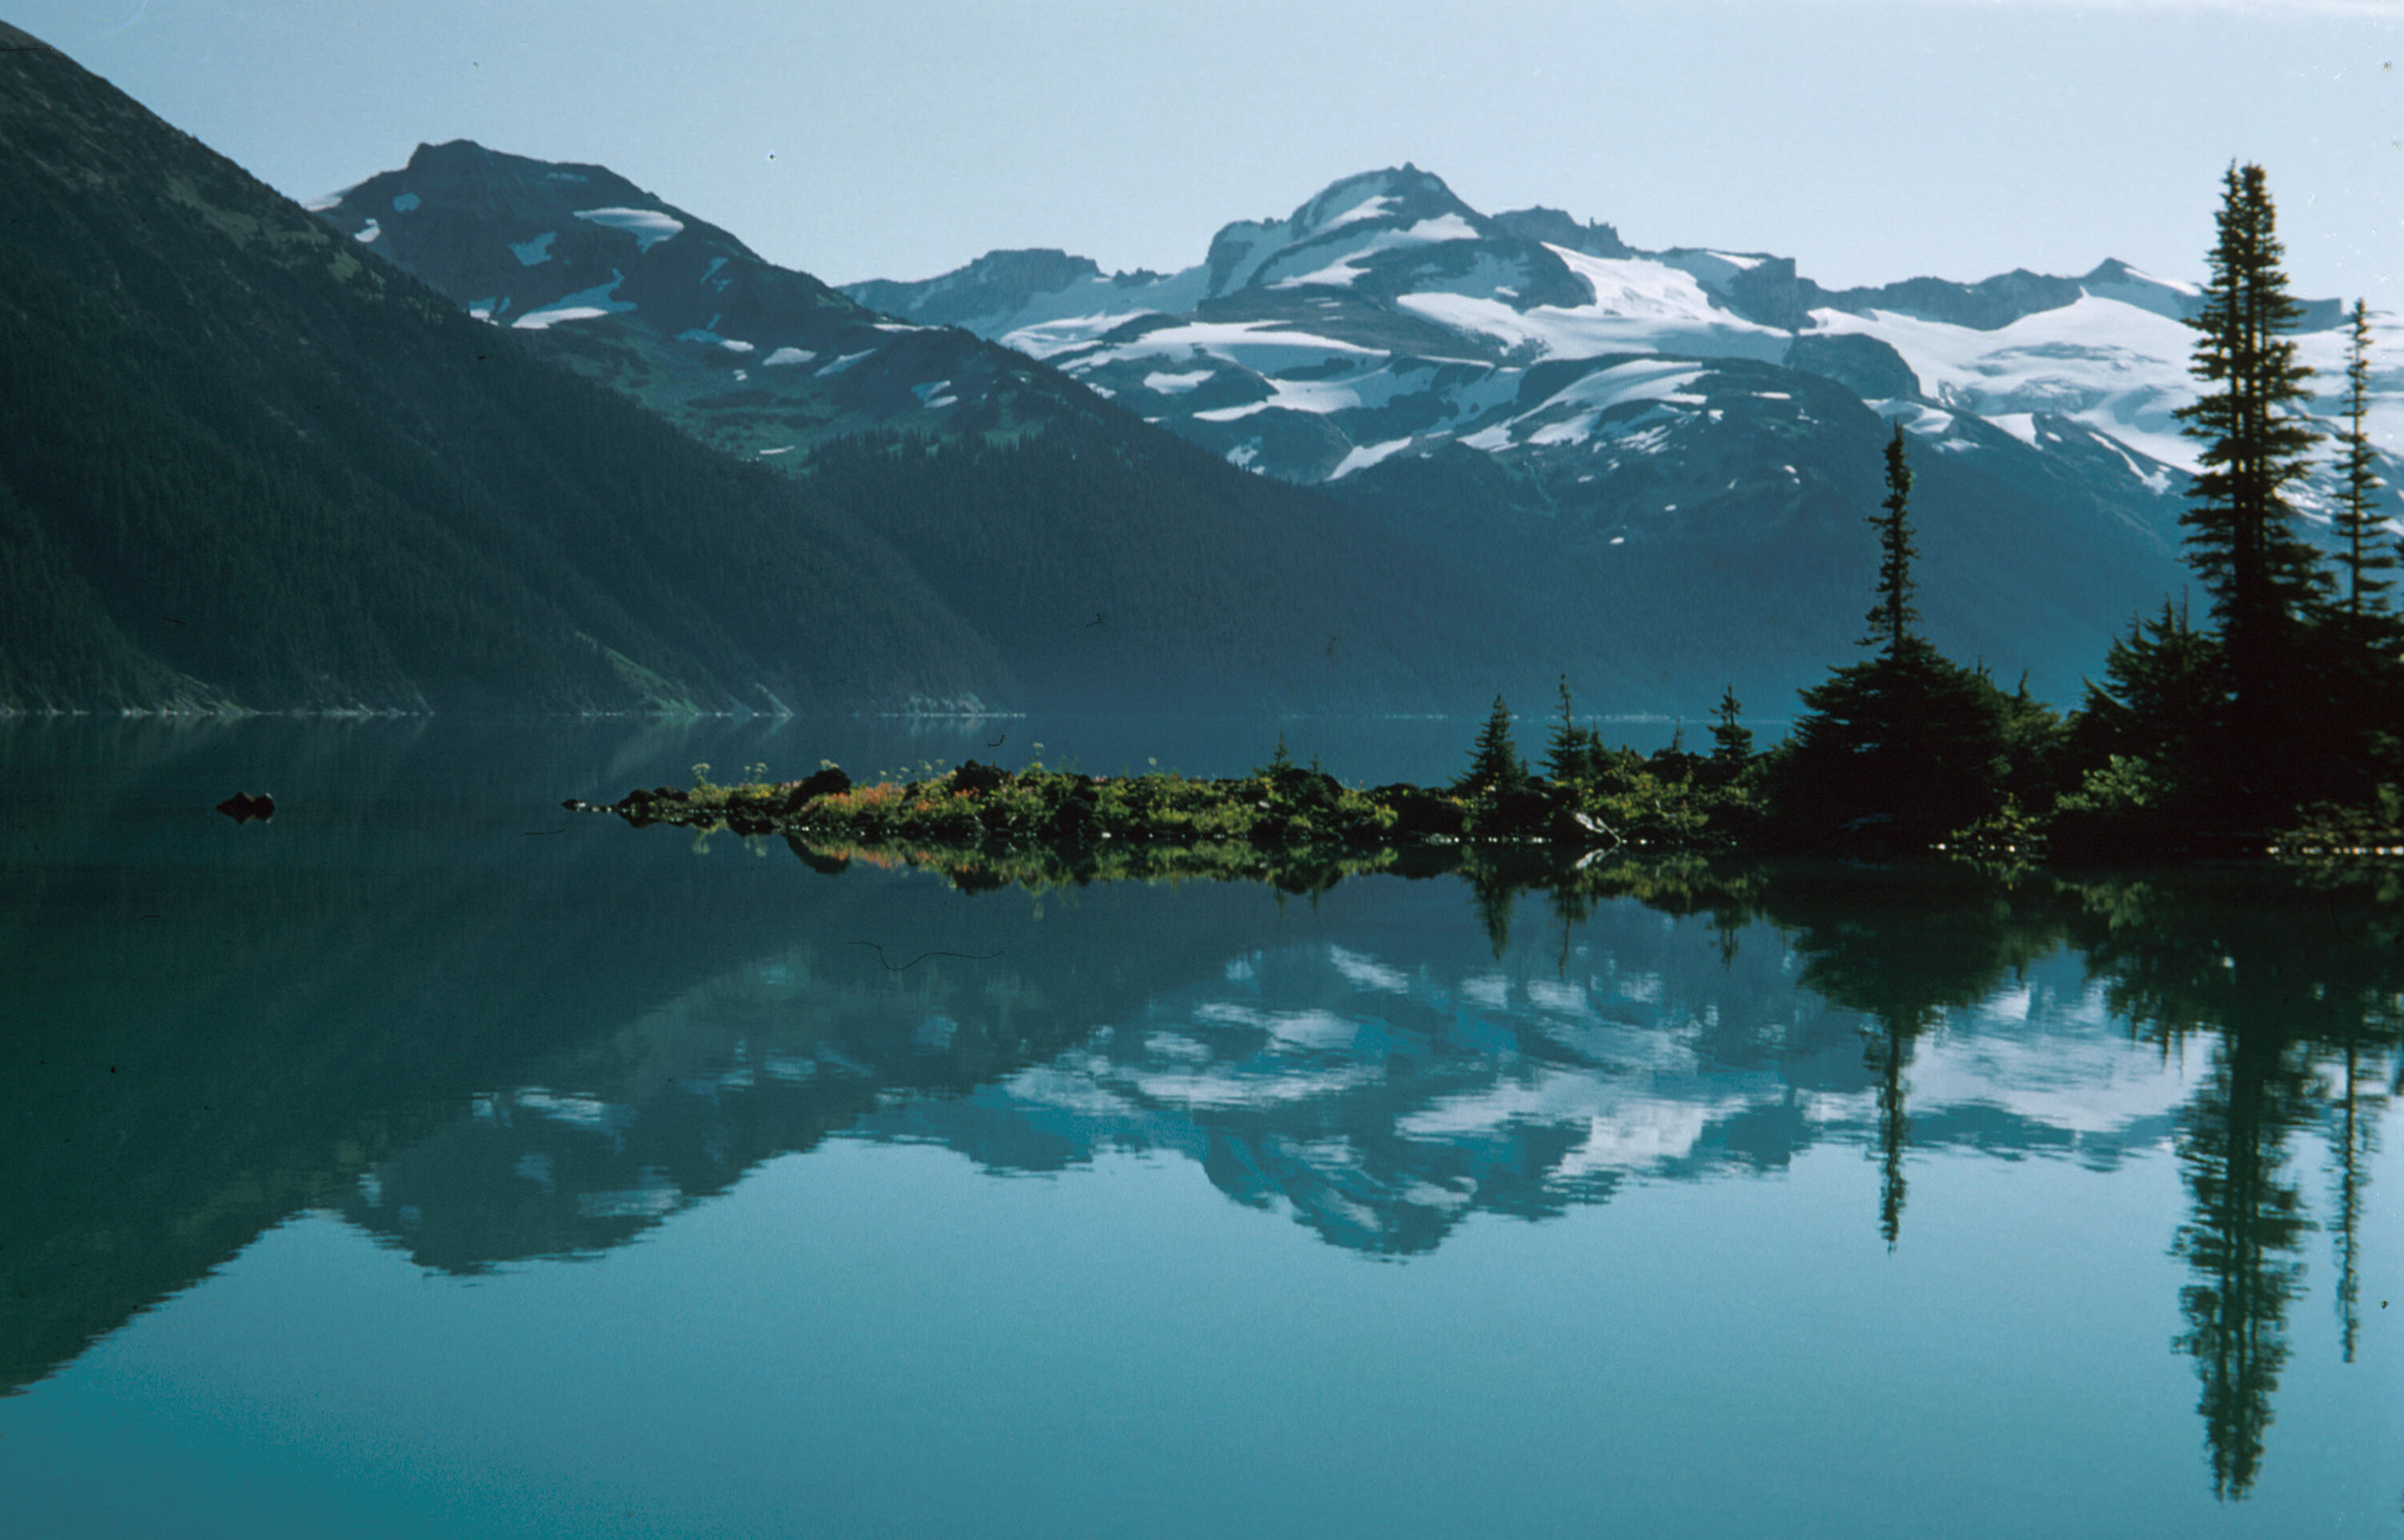 The pristine waters and majestic mountains of BC get me excited for the adventures of the summer.